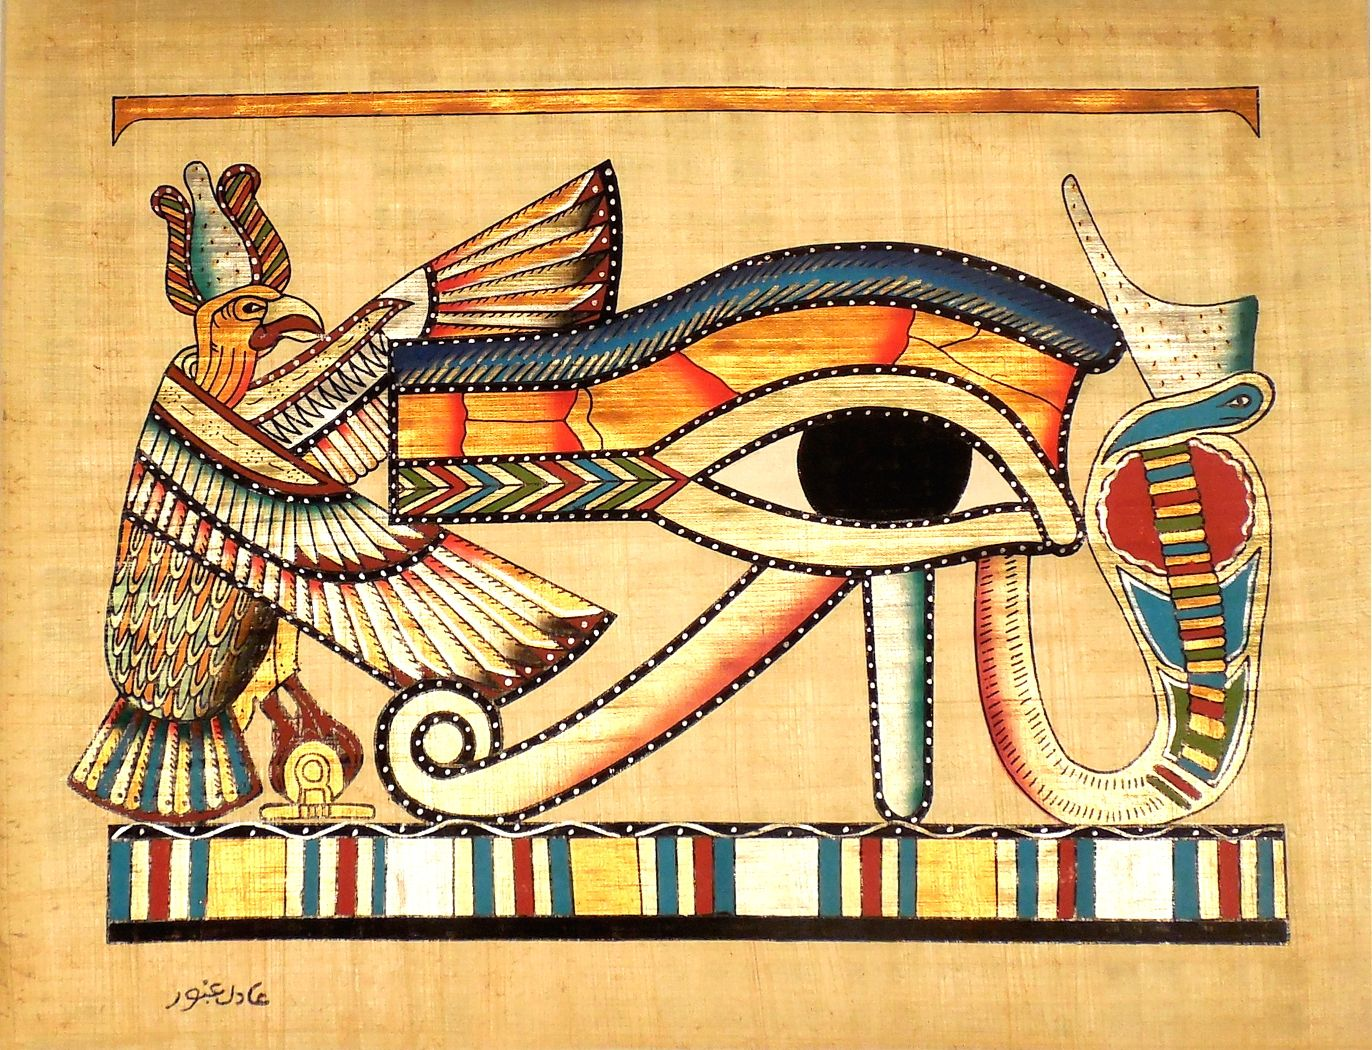 Eye of ra ancient egyptian papyrus painting ancient egyptian ancient egyptian art on egyptian papyrus unique handmade art for sale at arkangallery biocorpaavc